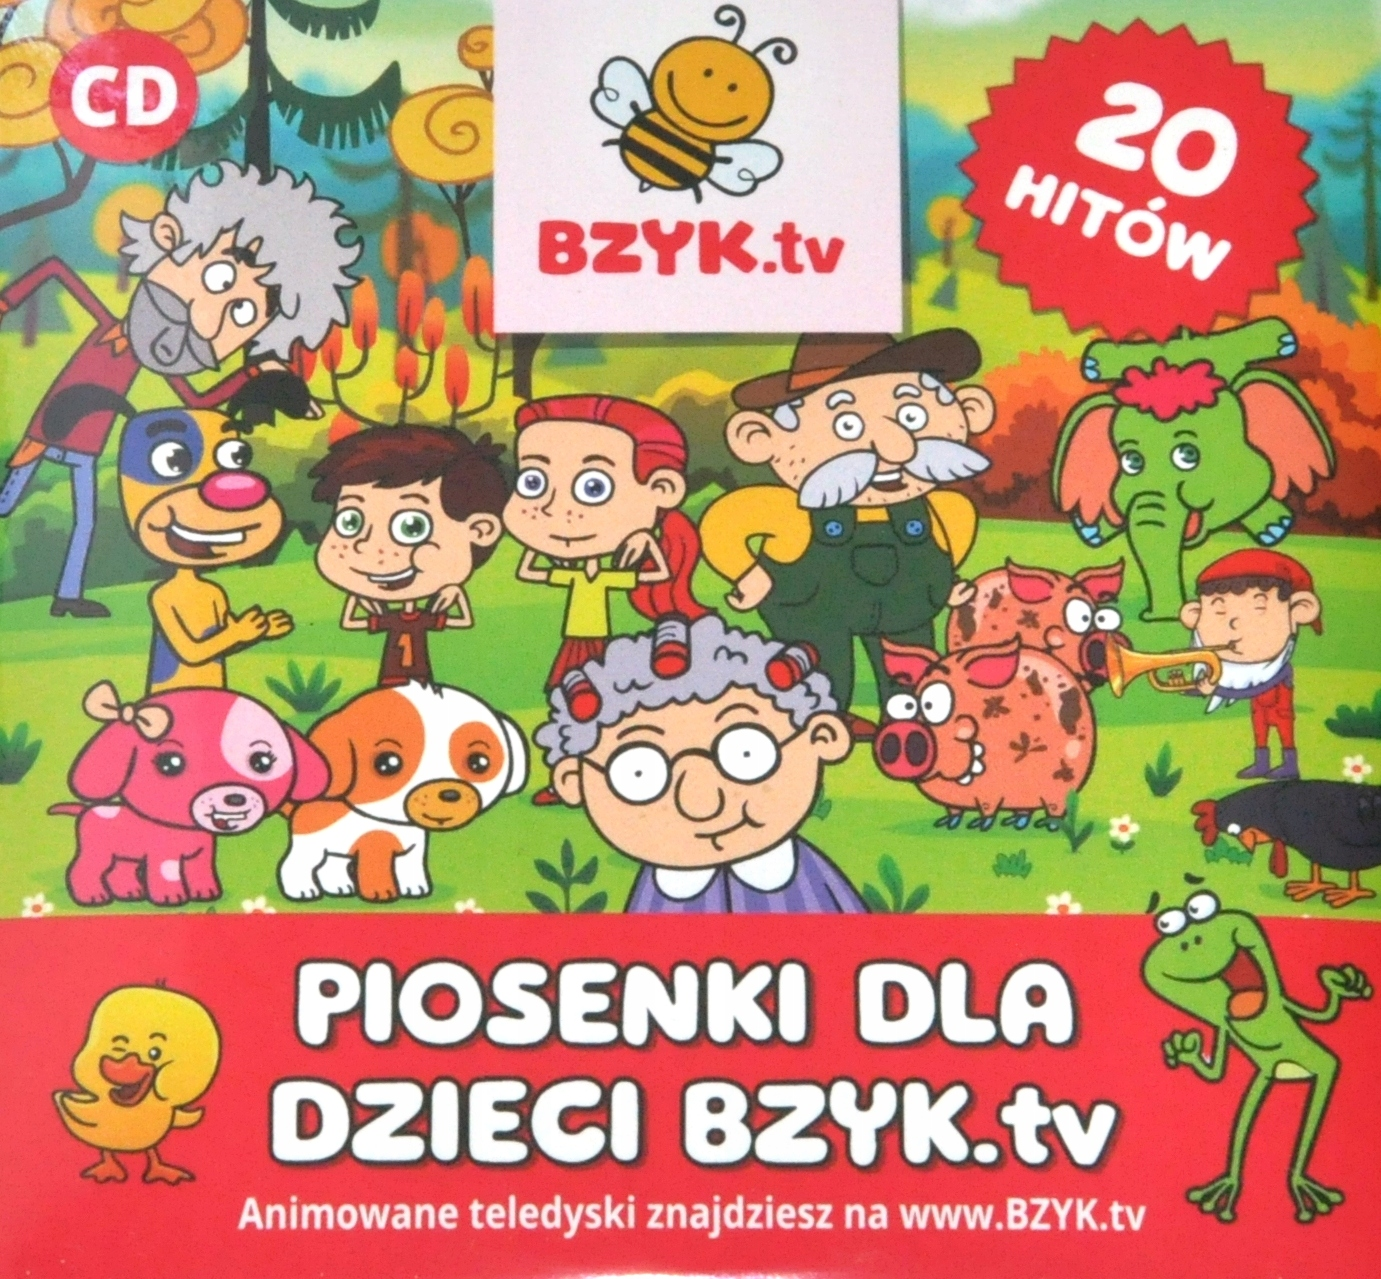 Item Songs for children-CD songs channel BZYK.tv